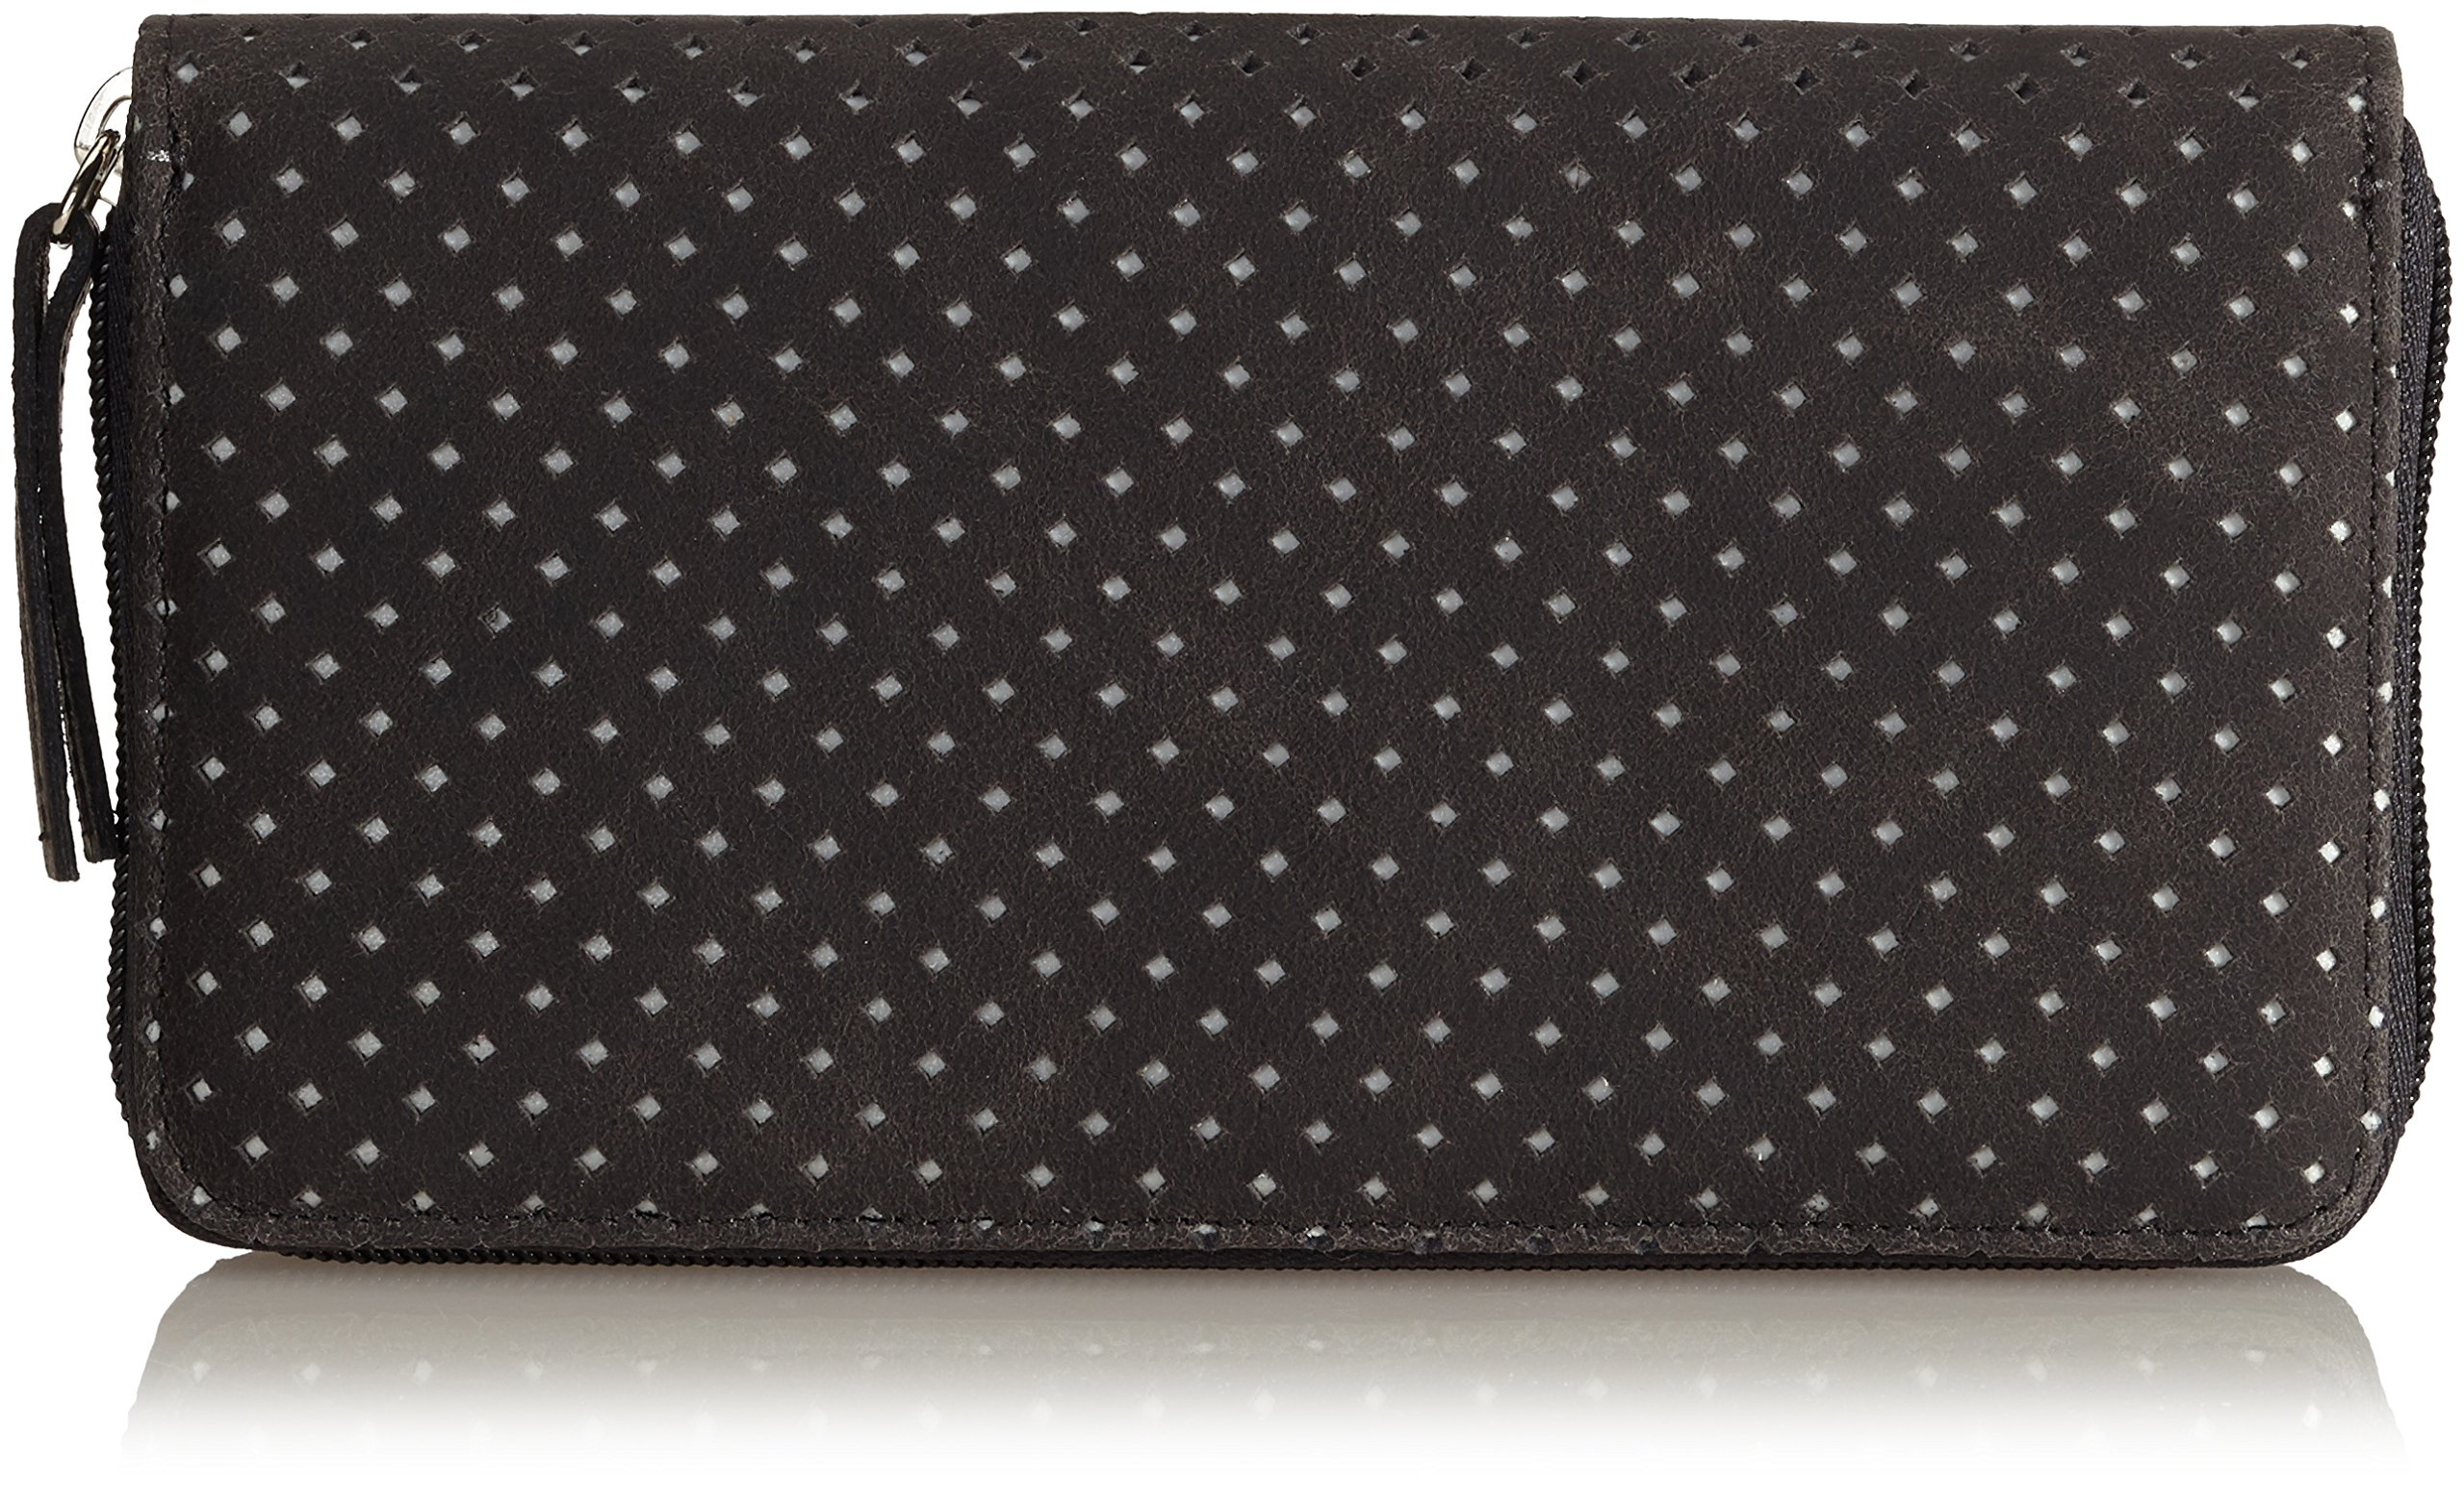 Jost Credit Card Case, 18 cm, Lava 1821-718